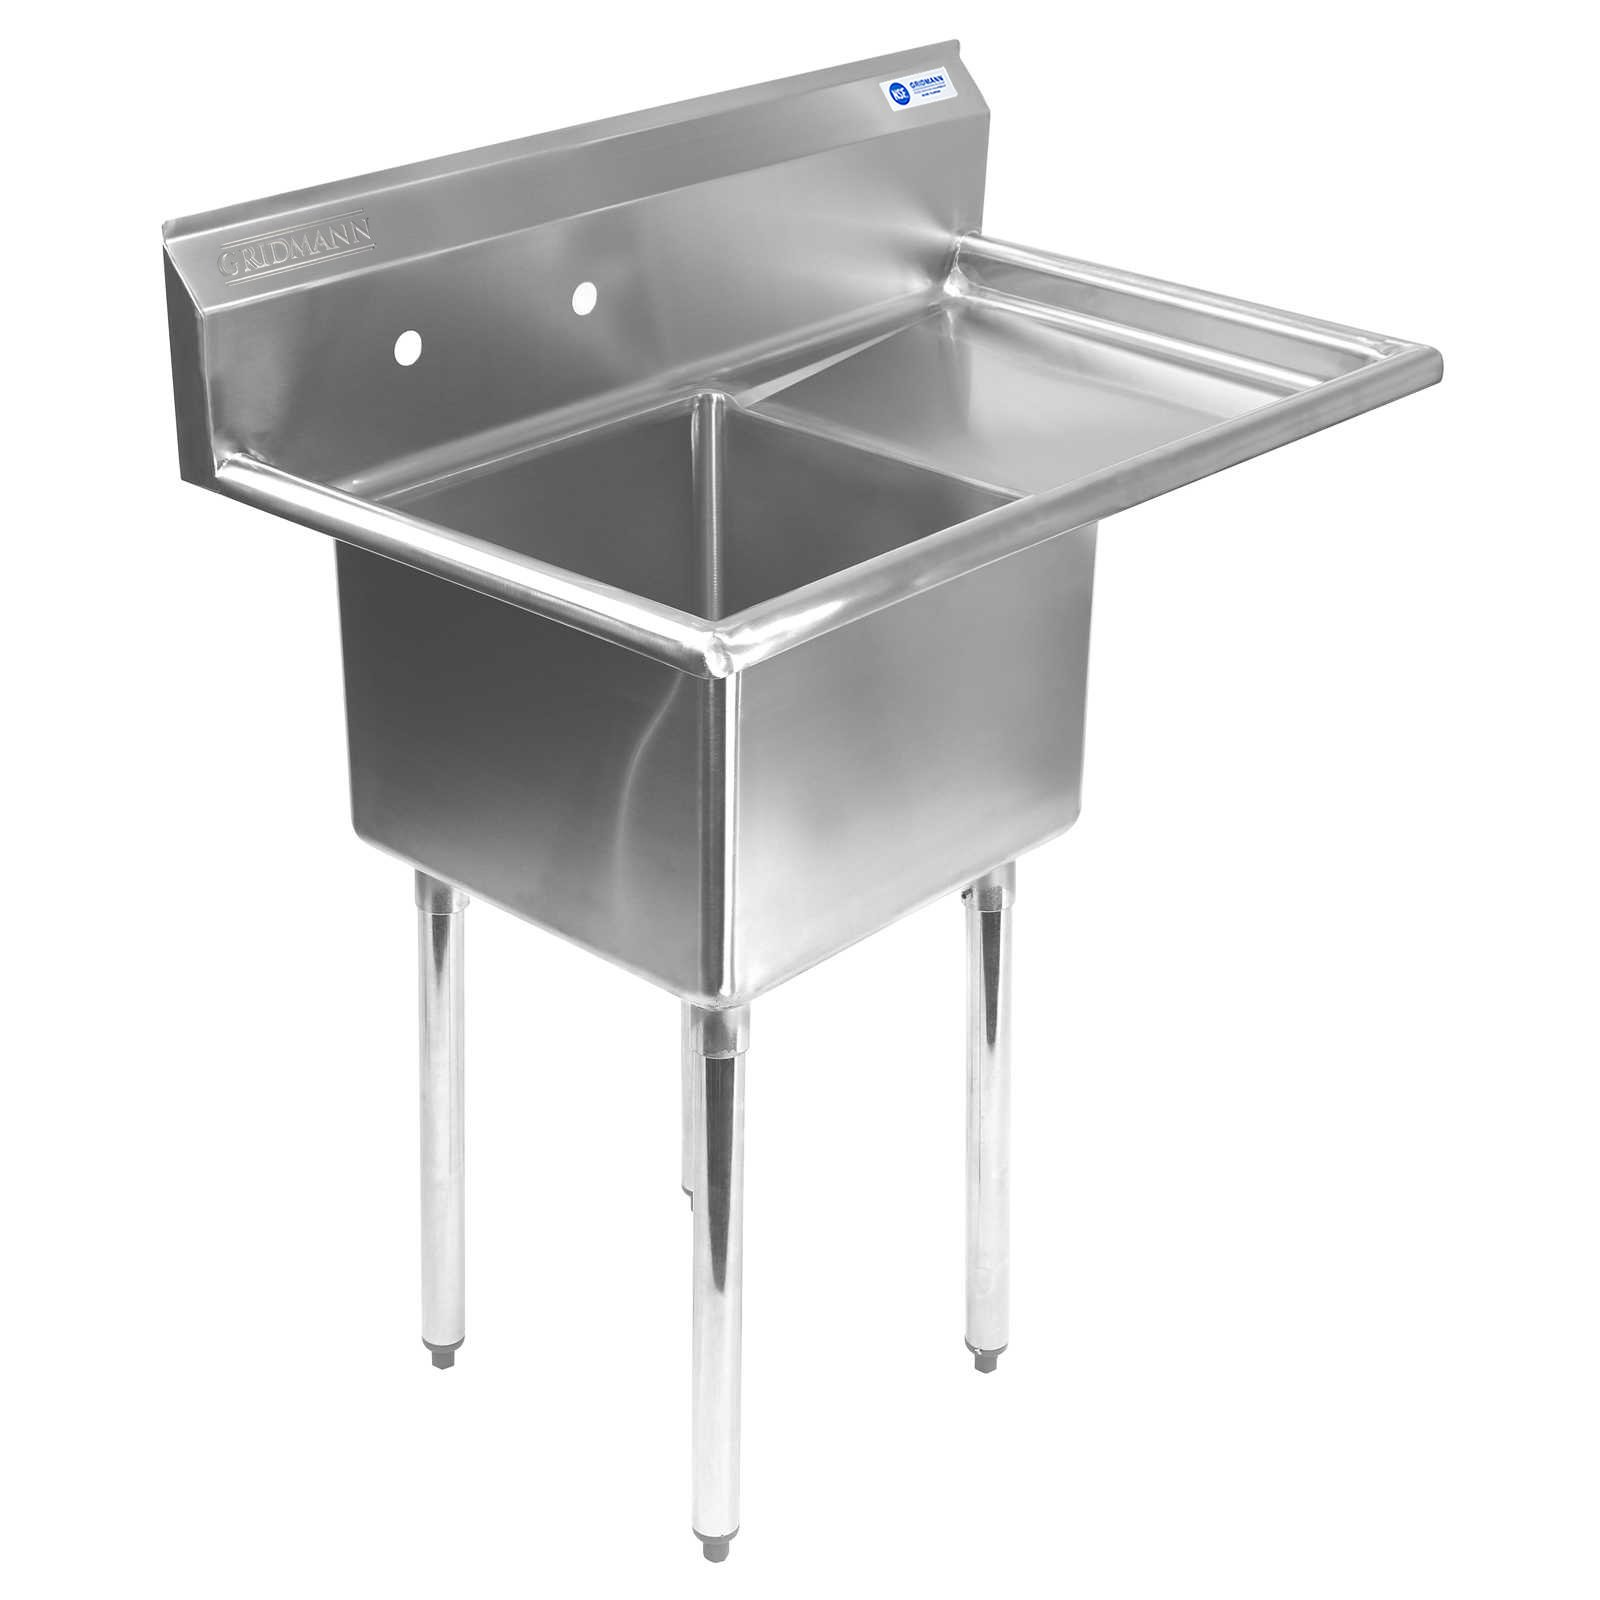 Gridmann 1 Compartment NSF Stainless Steel Commercial Kitchen Prep & Utility Sink w/ Drainboard - 39 in. Wide by Gridmann